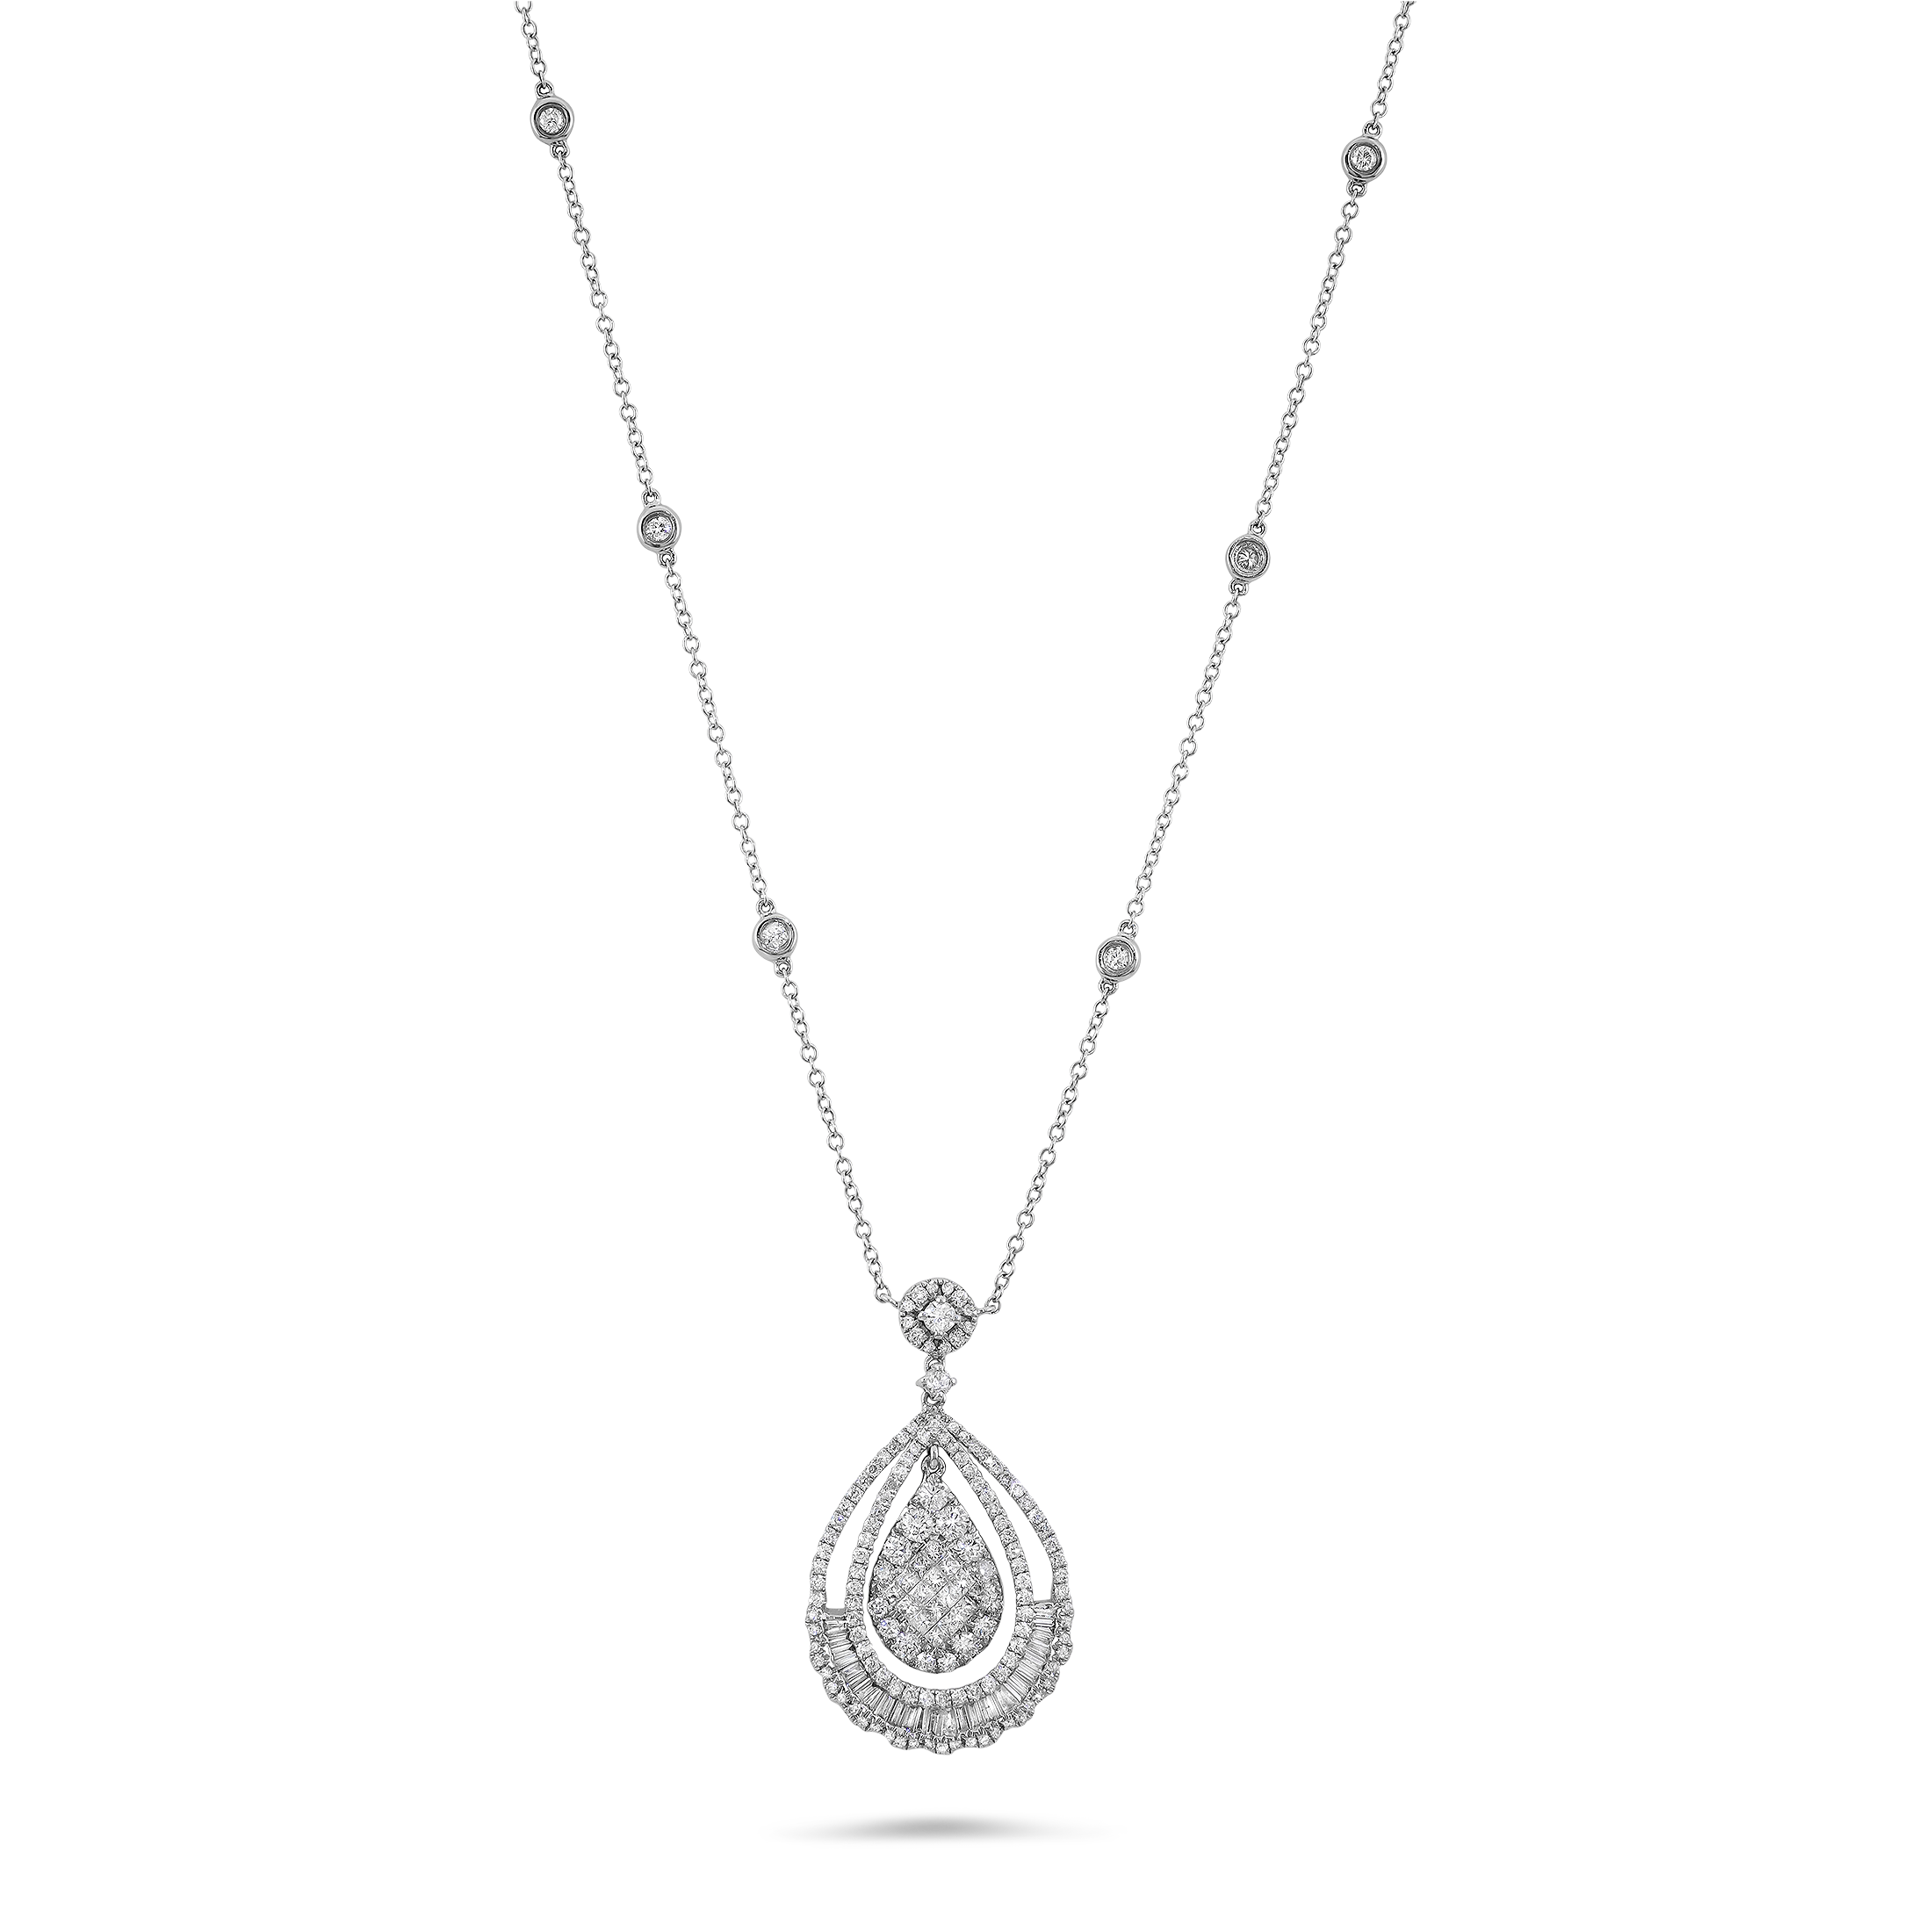 White gold chain png. Pendant necklace photos mart